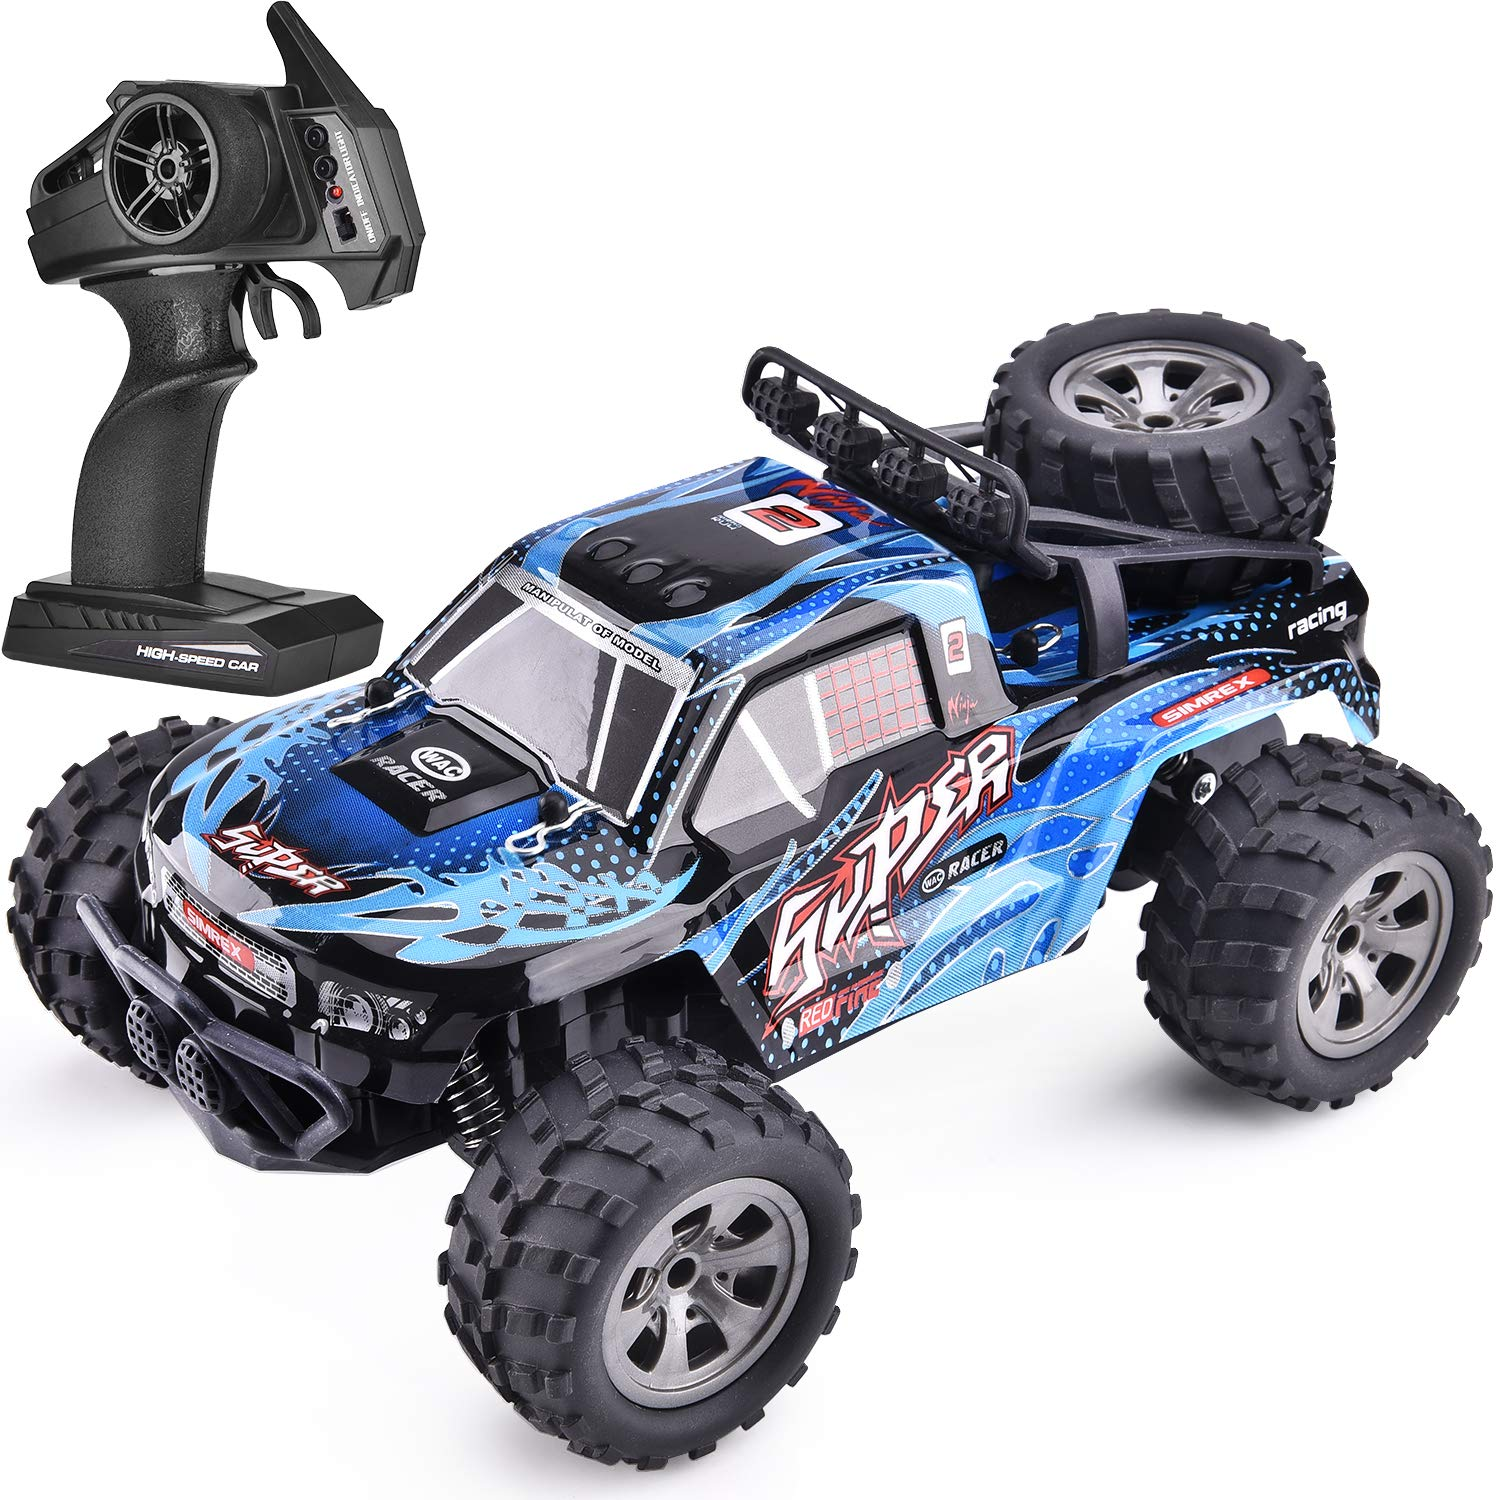 SIMREX A240 RC Cars High Speed 20KM/H Scale RTR Remote Control Brushed Monster Truck Off Road Car Big Foot RC 2WD Electric Power Buggy W/2.4G Challenger Blue